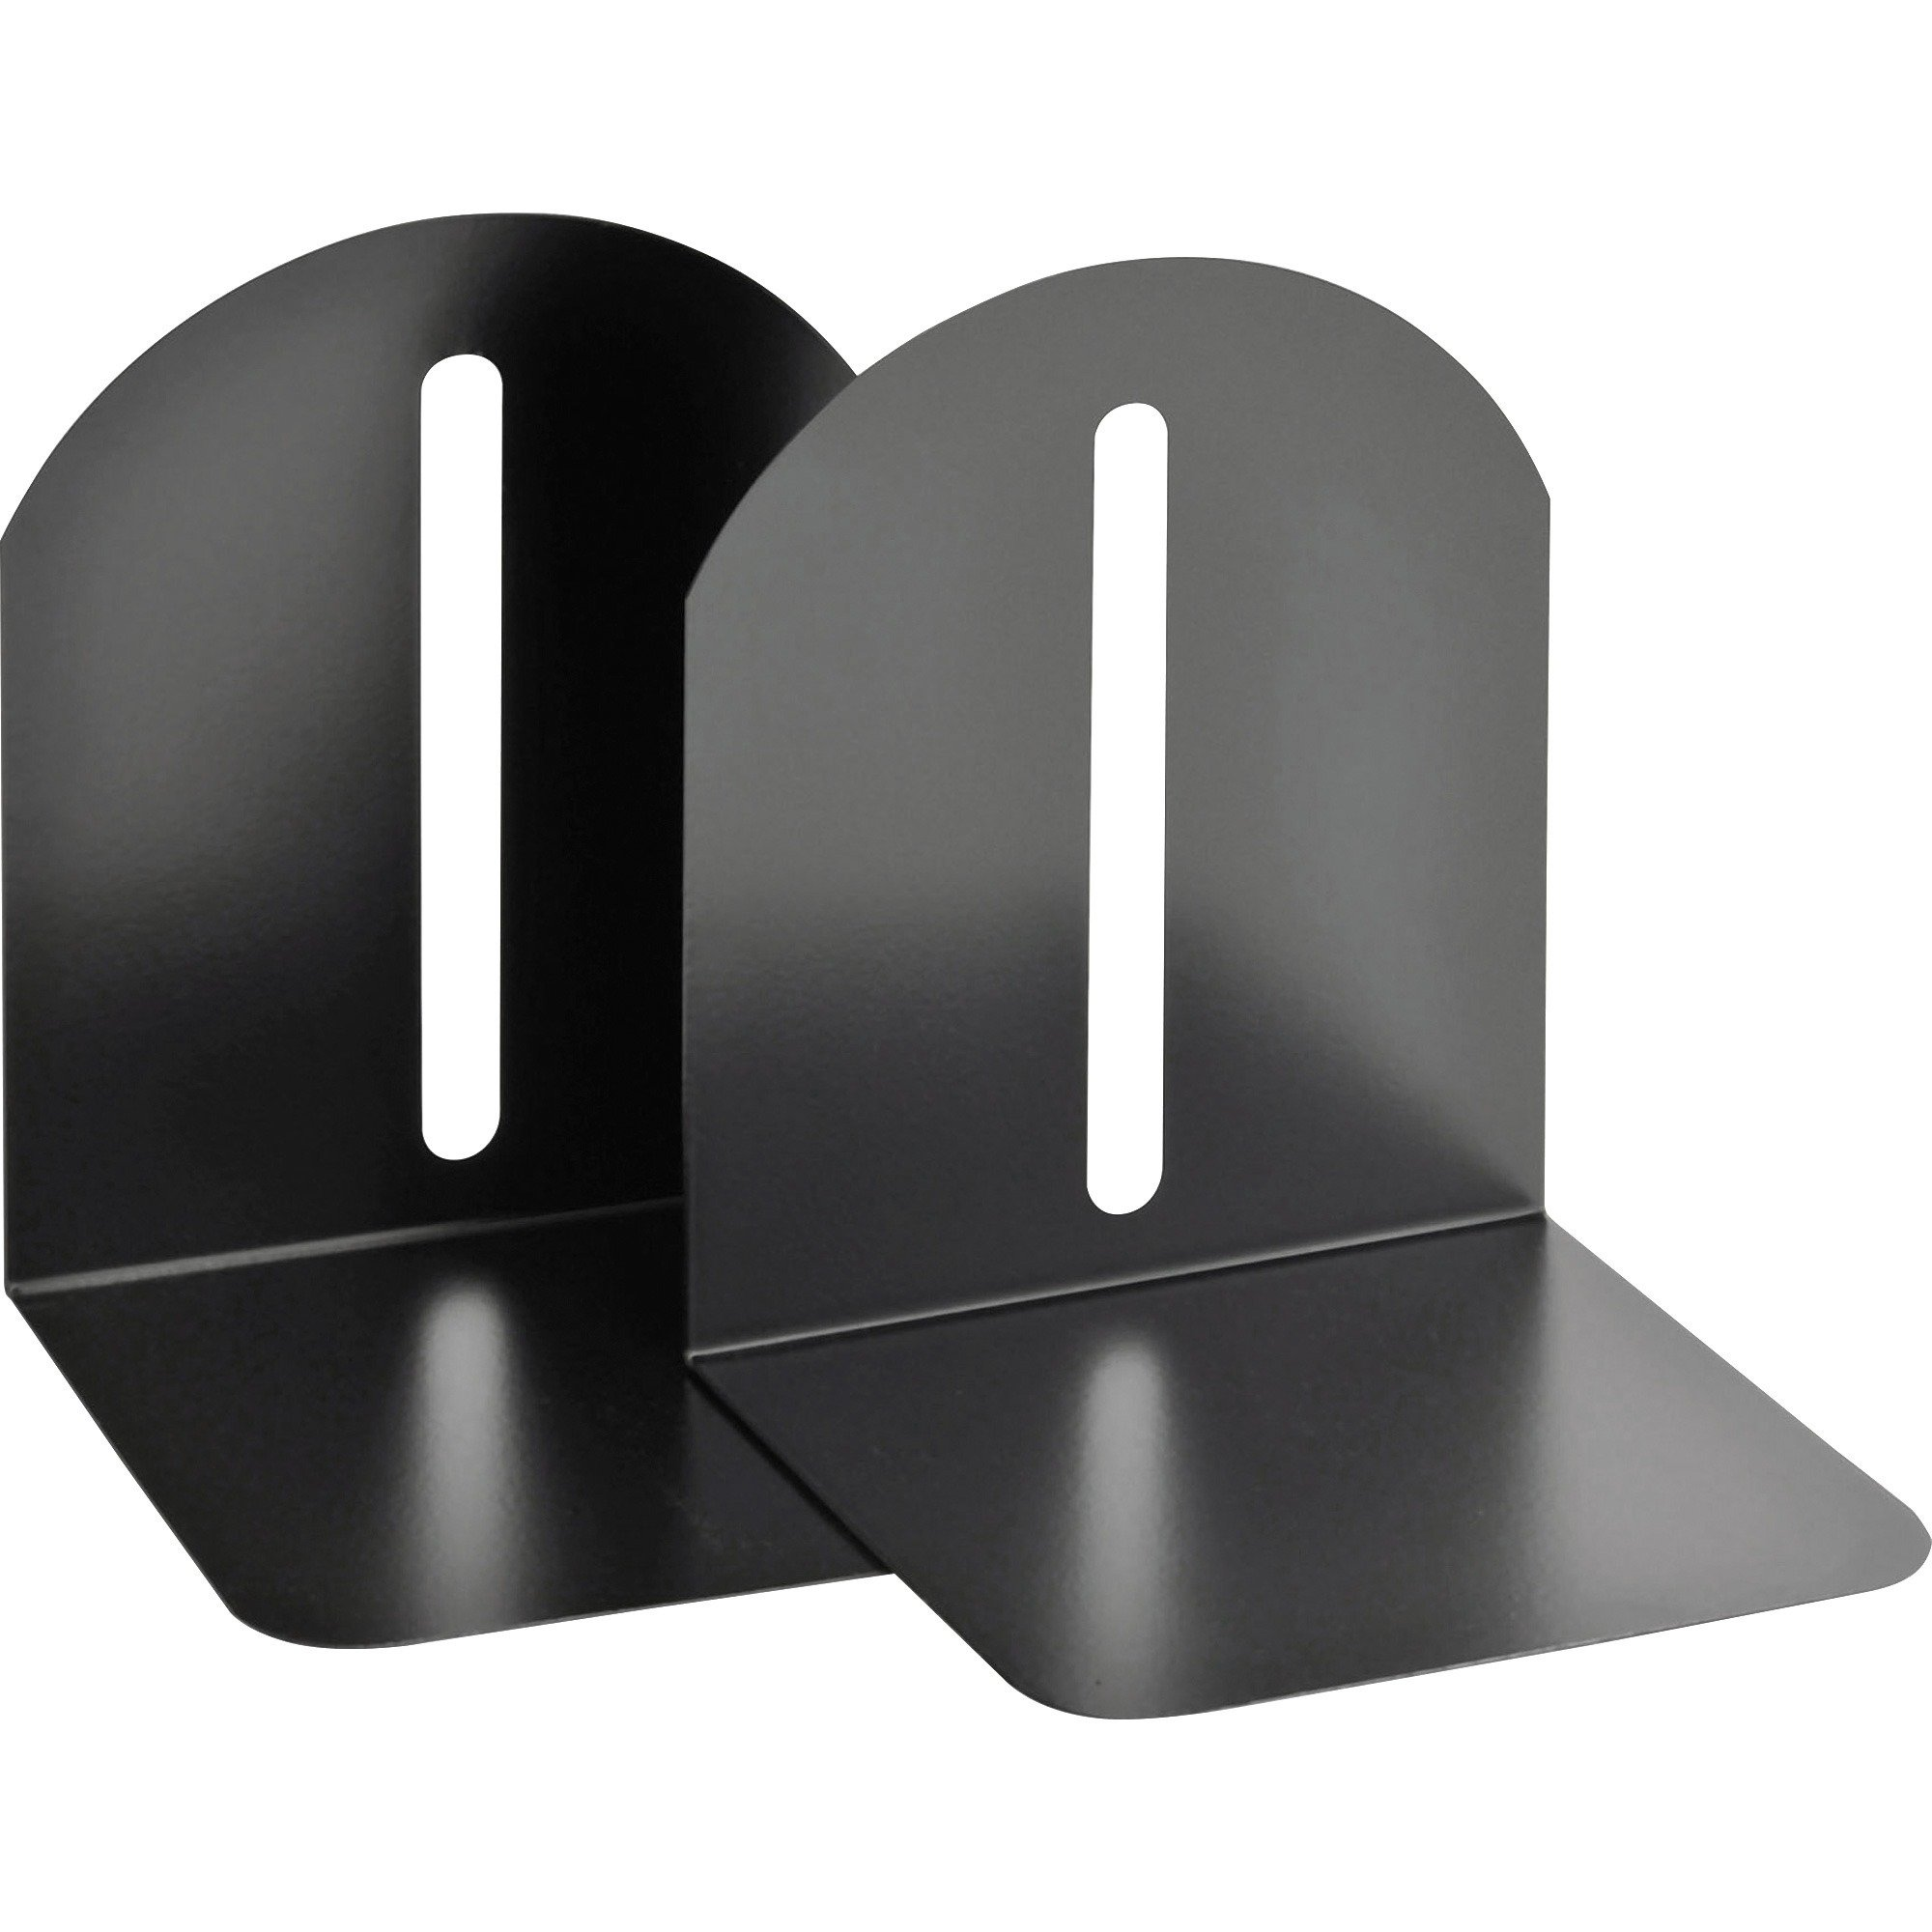 MMF Industries 241017204 Fashion Bookends, Magnetic, Steel, 5-9/10-Inch x5-Inch x7-Inch, Black